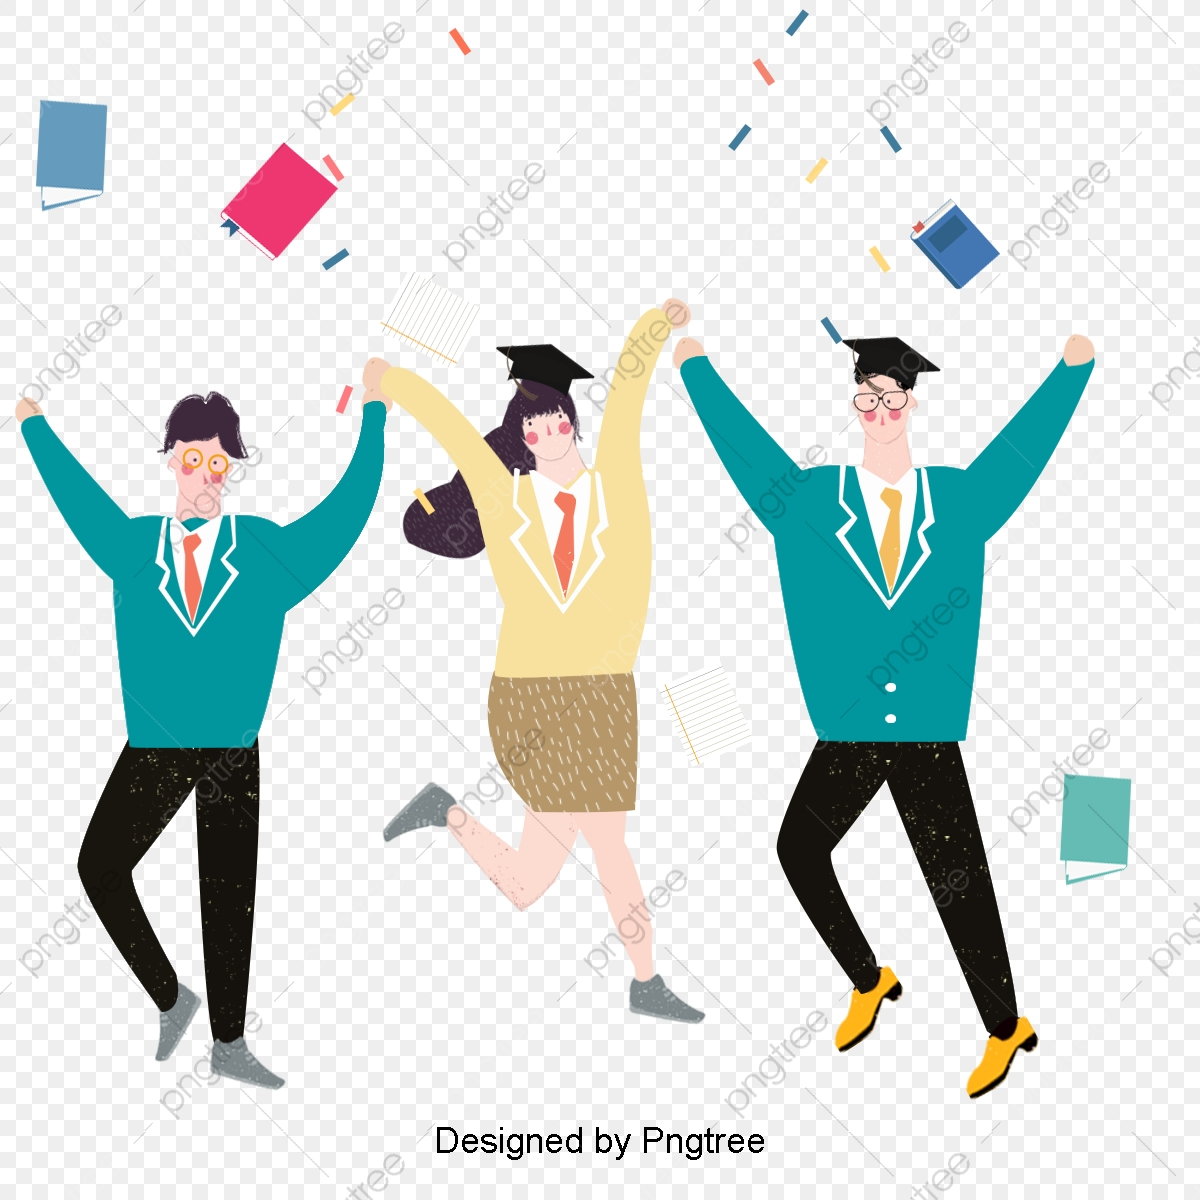 Celebrate clipart student. Three cartoon students graduation